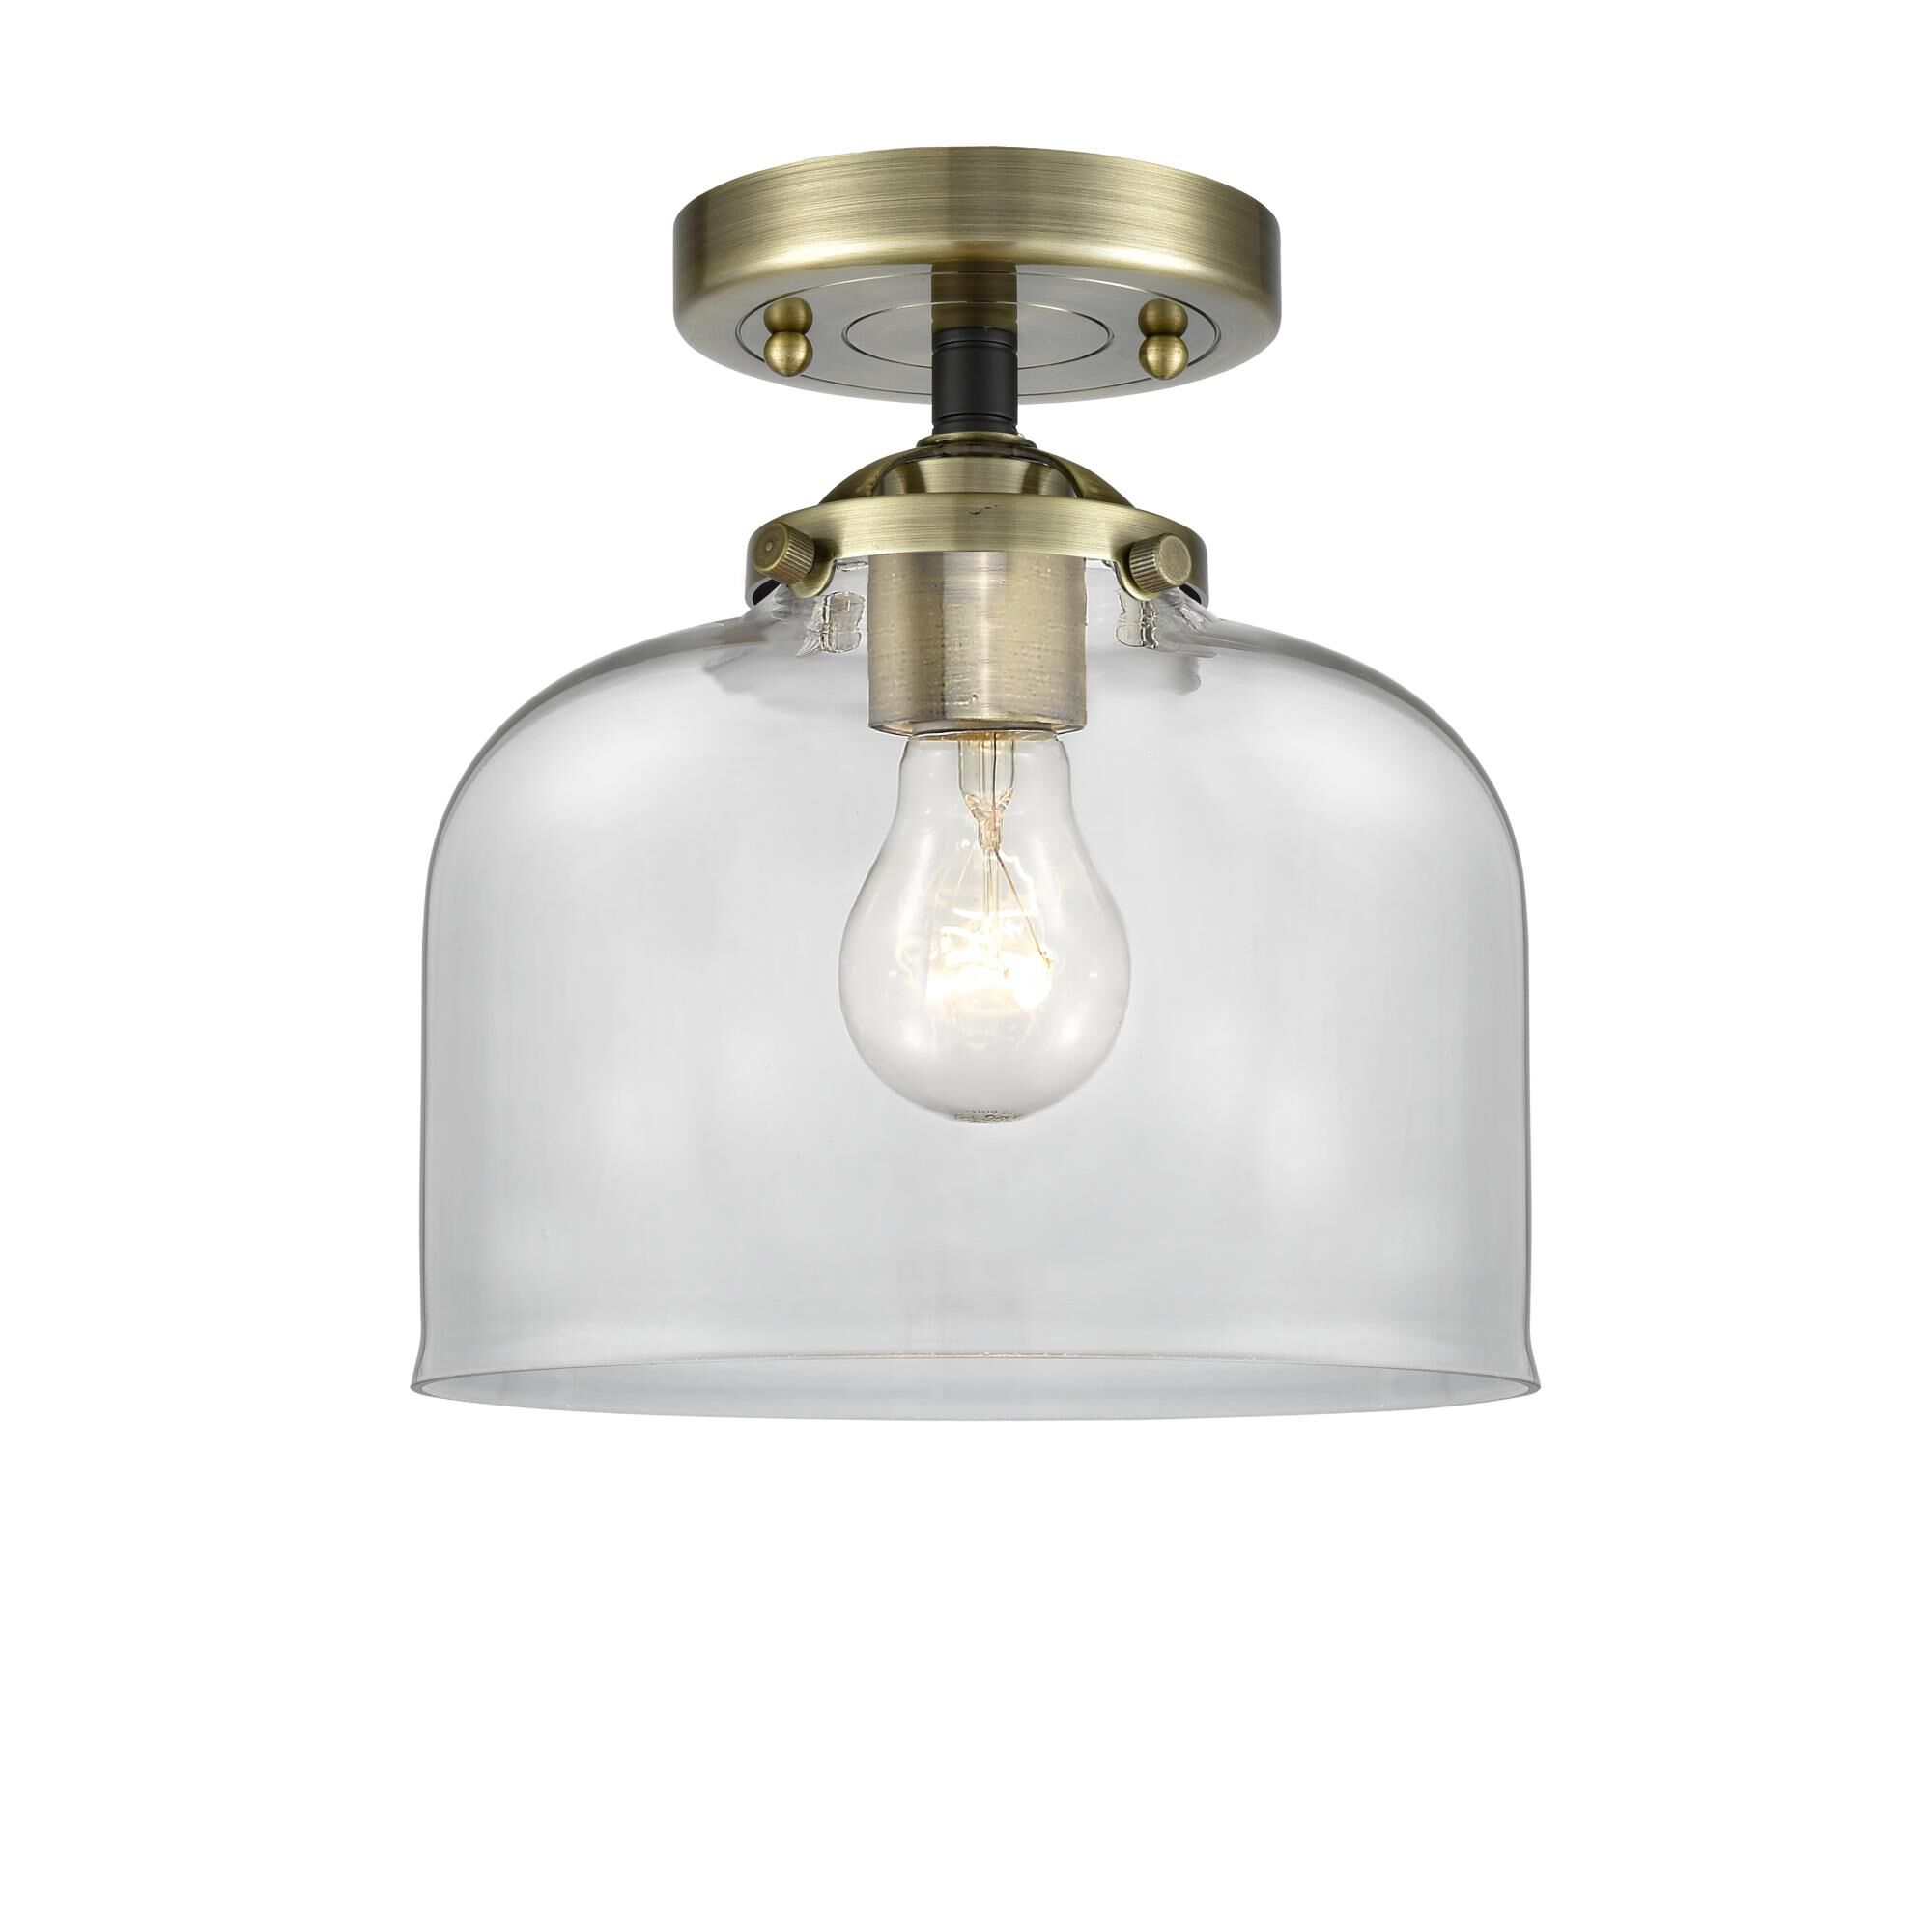 Innovations Lighting Bruno Marashlian Bell 8 Inch 1 Light Semi Flush Mount Bell - 284-1C-BAB-G72 - Transitional Semi Flush Mount